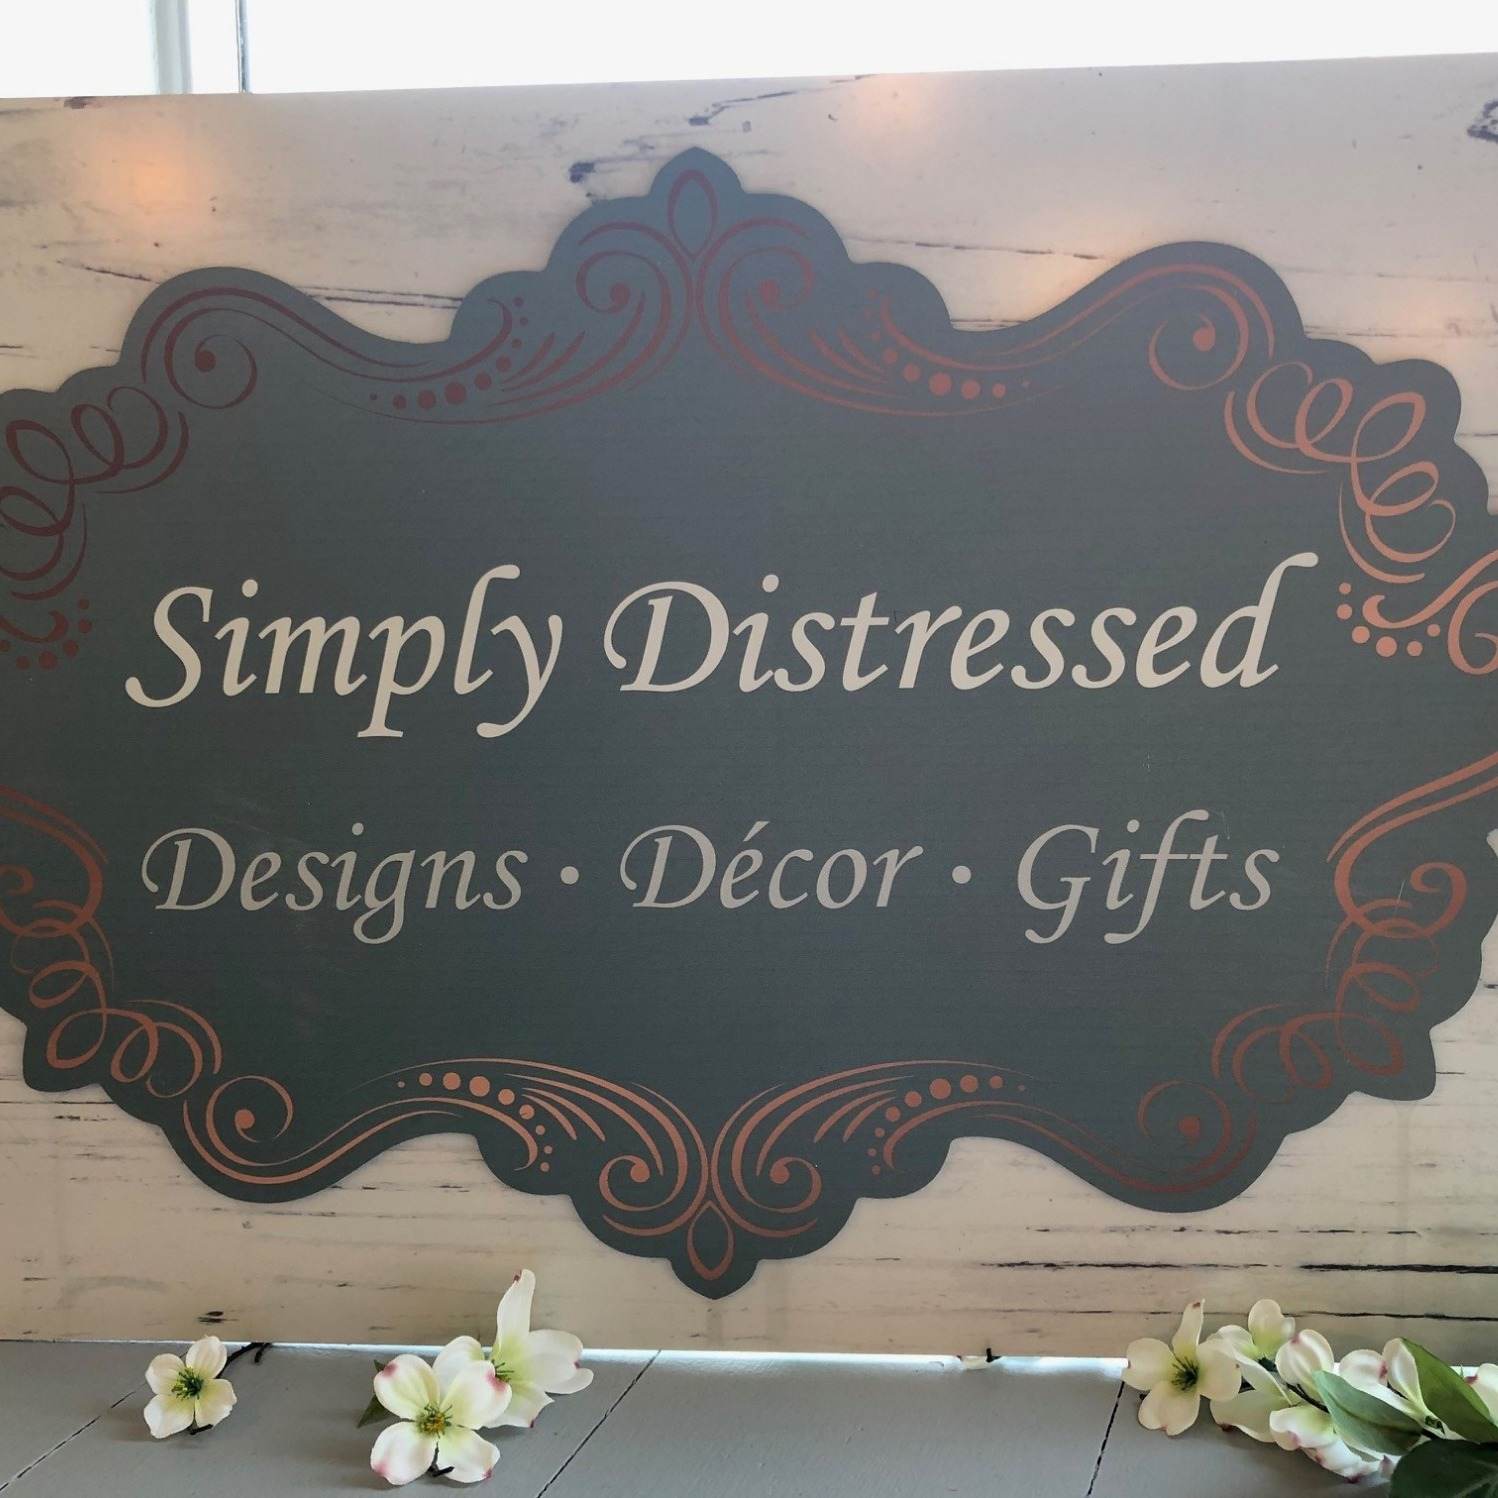 Simply Distressed Designs Decor Gifts image 1